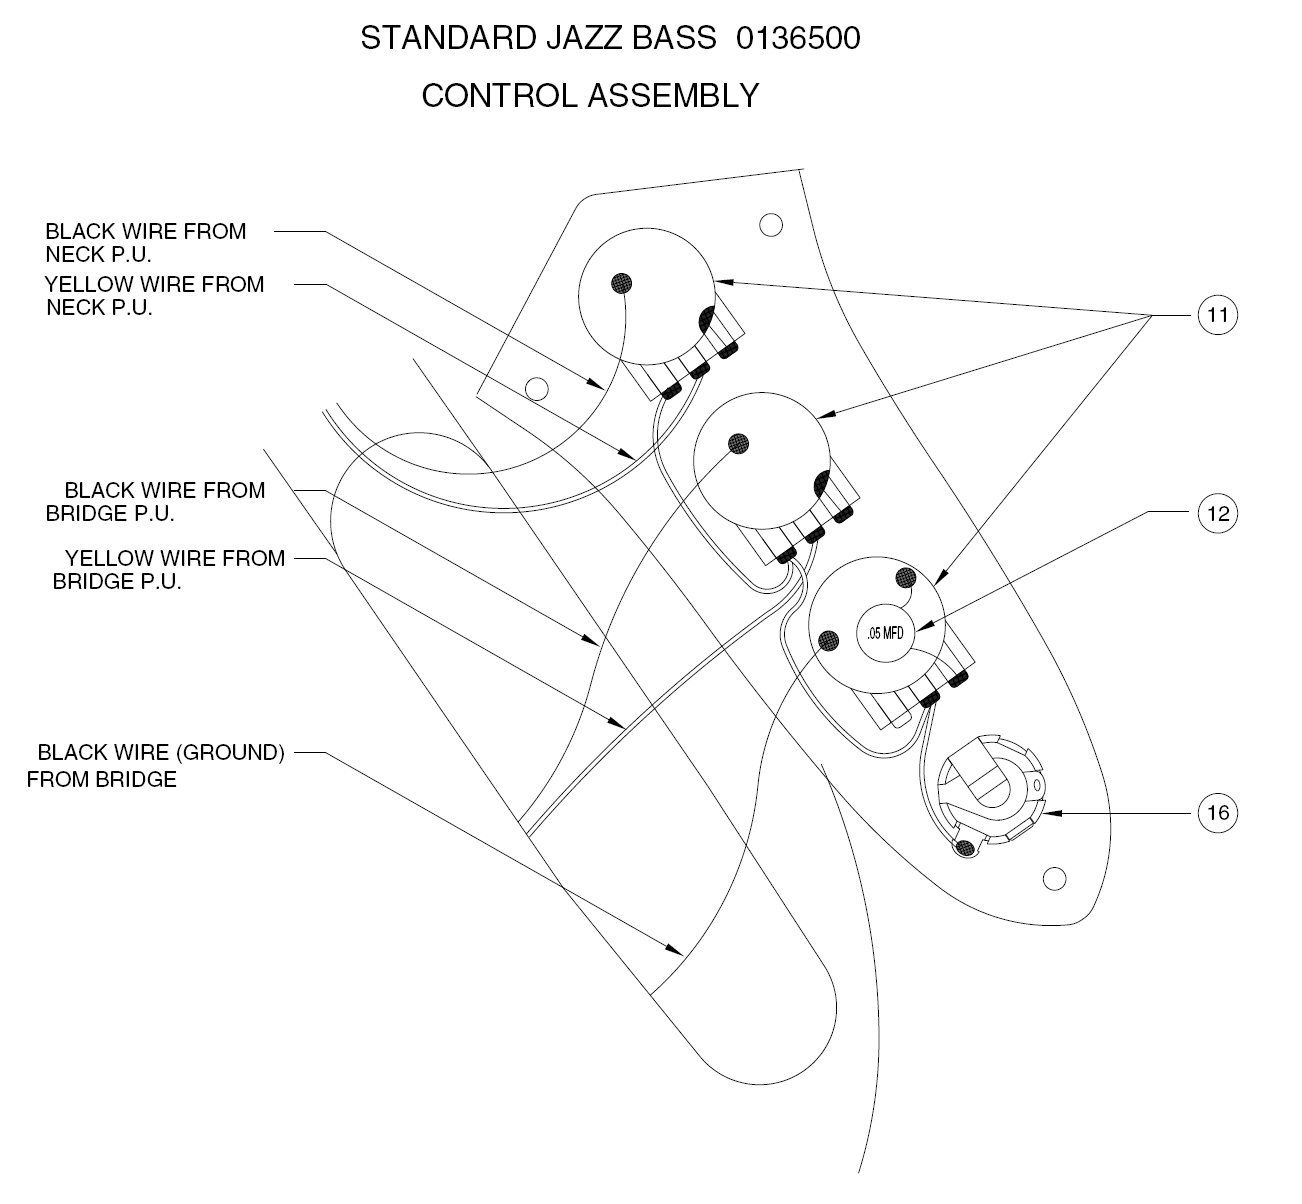 Fender American Deluxe Jazz Bass Wiring Diagram Not Lossing Wiring